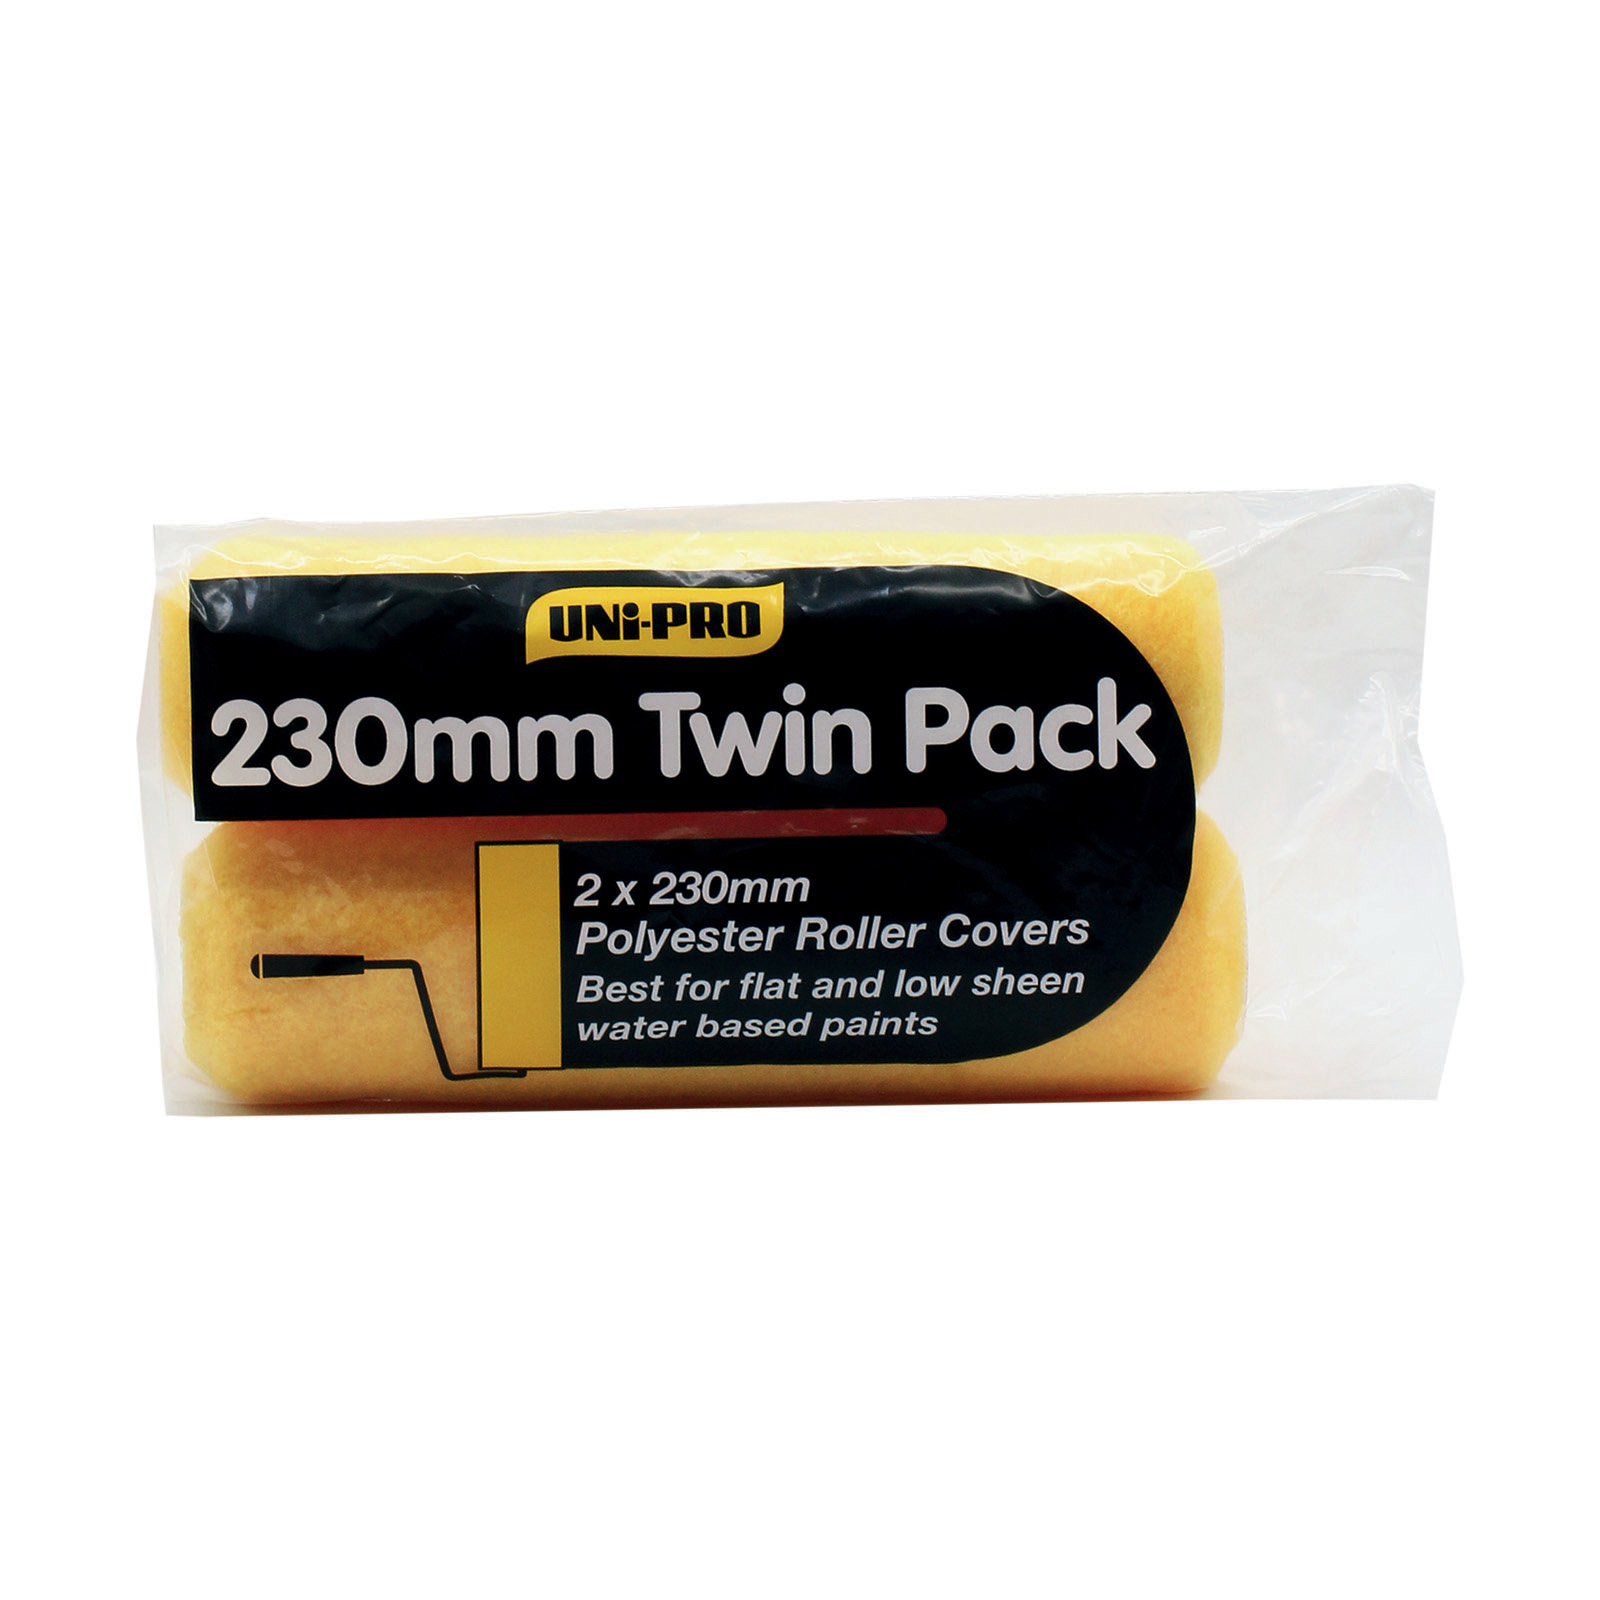 UNi-PRO Twin Pack Roller Covers - 10mm nap